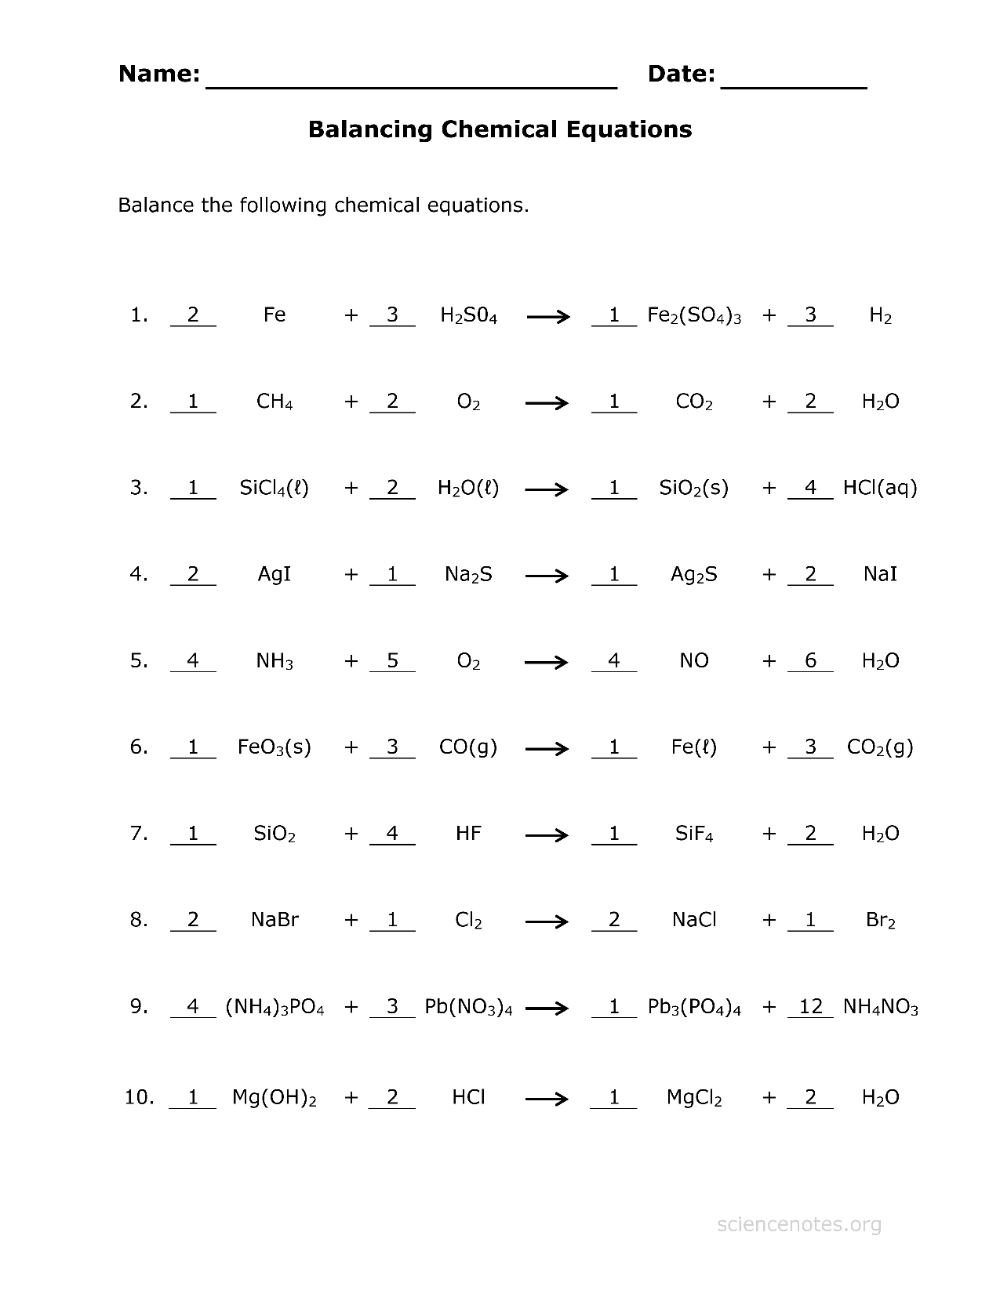 Latest Answer key for the Balance Chemical Equations worksheet Regarding Literal Equations Worksheet Answer Key